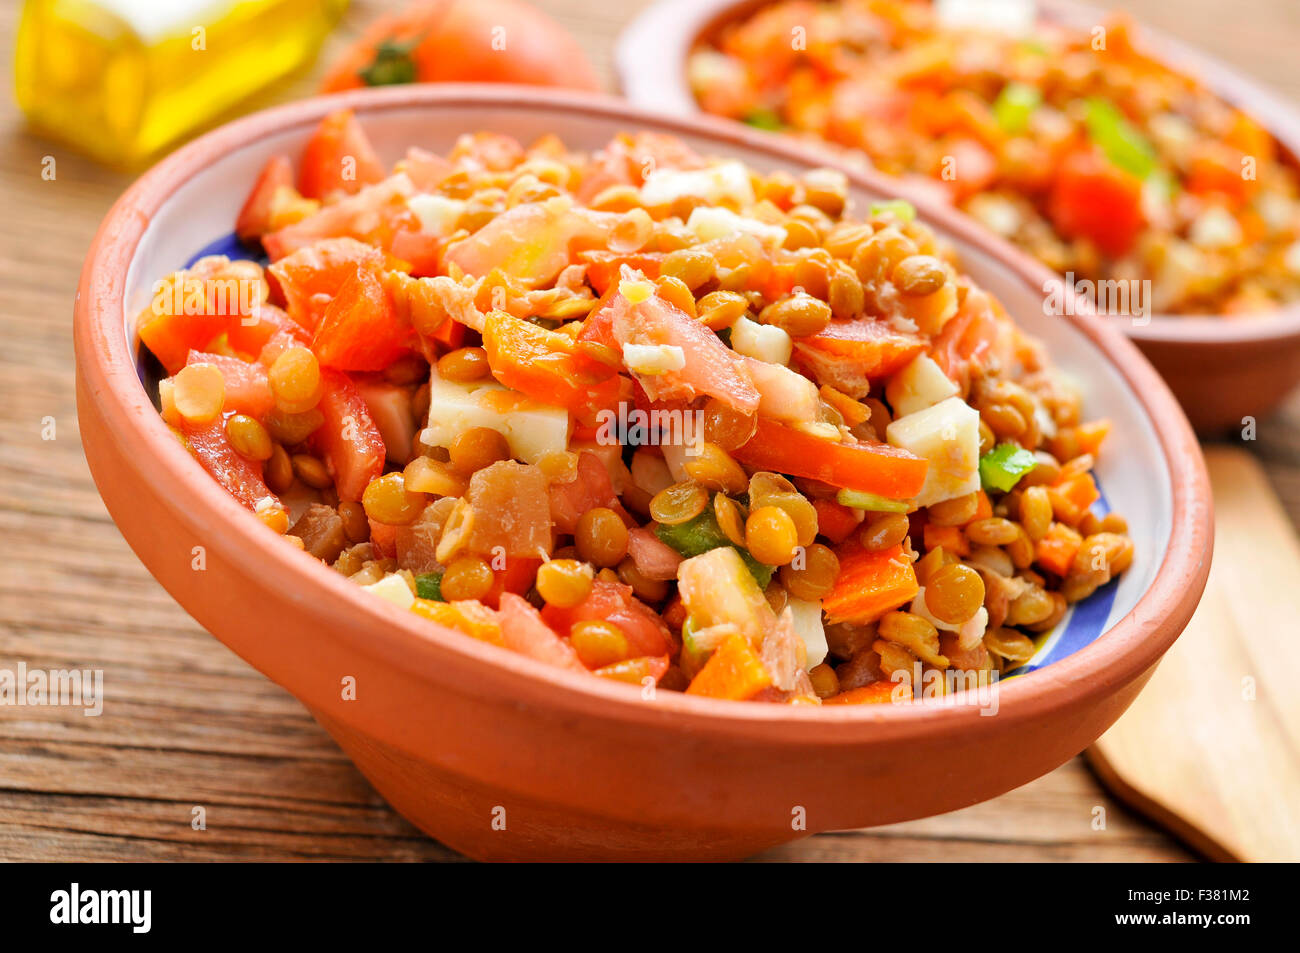 closeup of a earthenware bowl with a lentil salad on a rustic wooden table - Stock Image